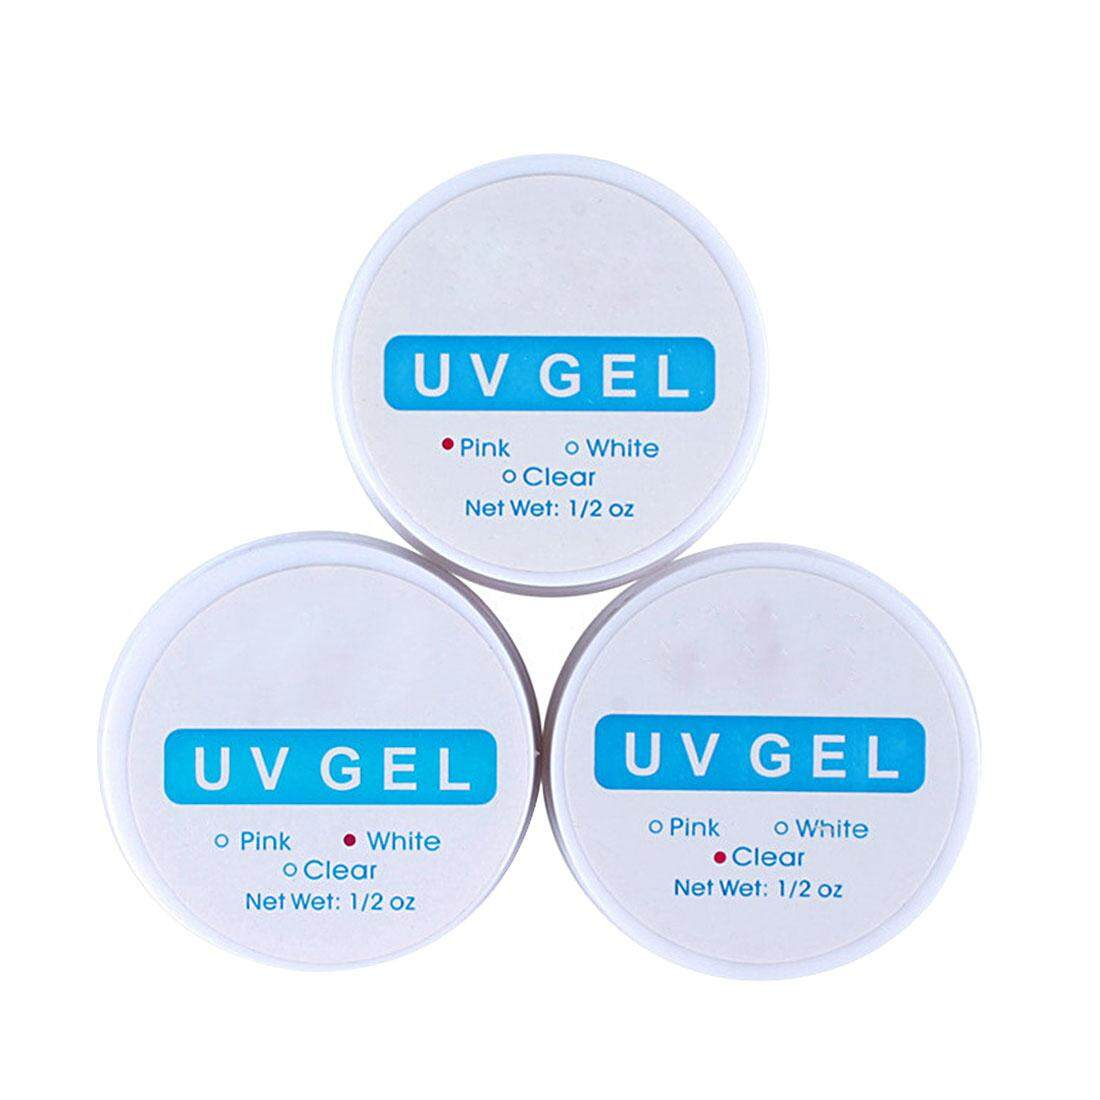 Magnify Your Beauty 2colors Nail Art Primer Top Coat Builder Uv Gel Nail Polish White/clear/pink - Intl By Xingchuang Store.